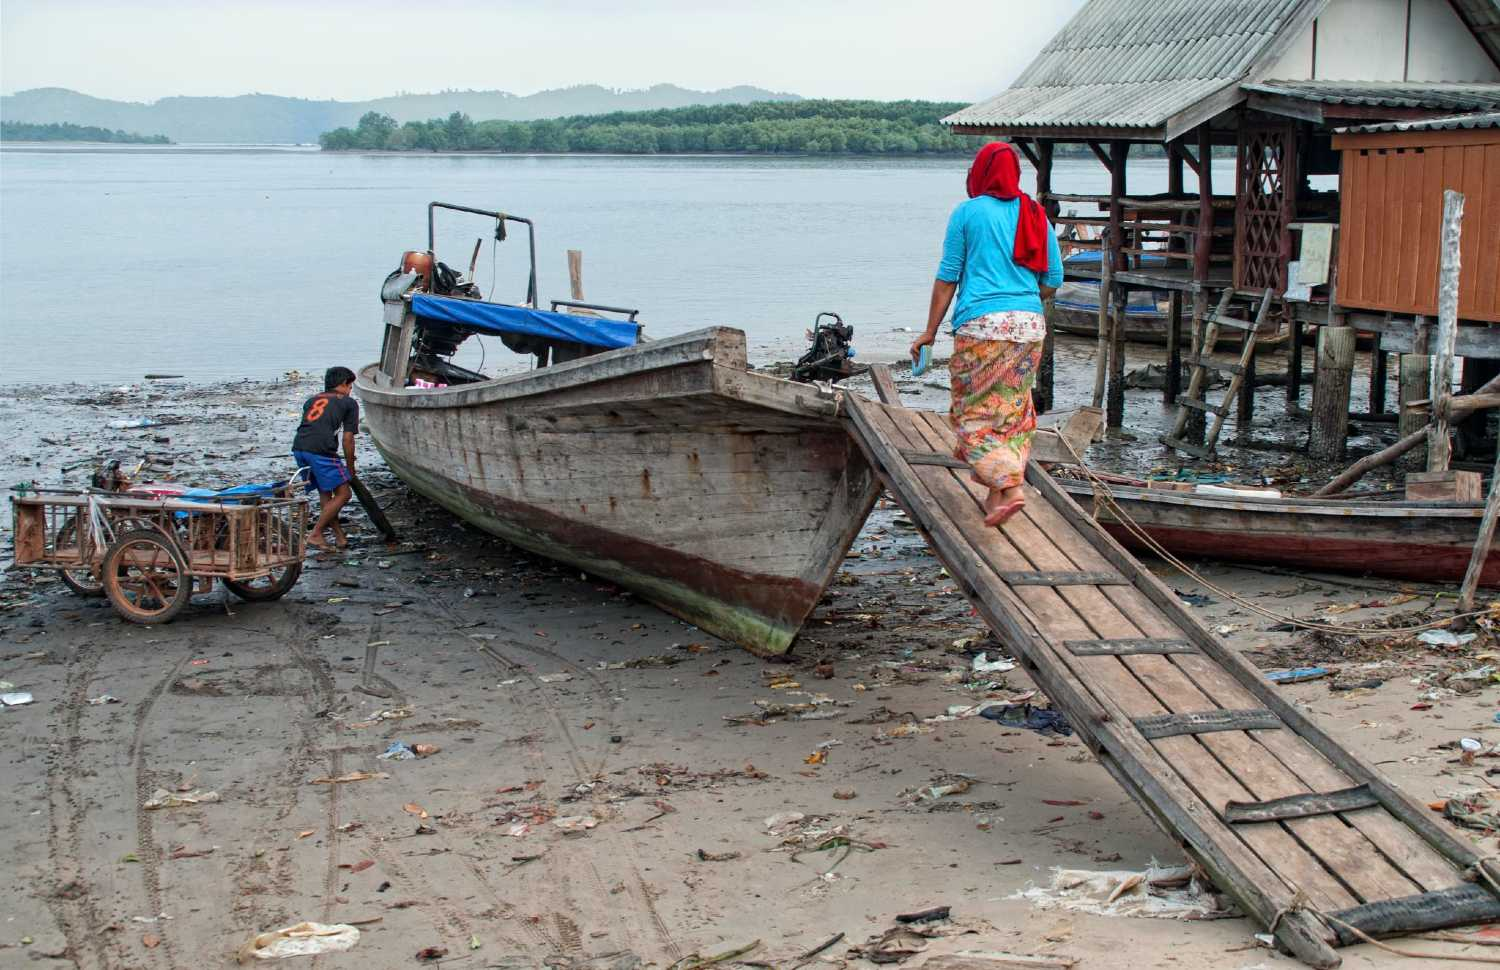 Fishing boat of the Urak Lawoi in Thailand